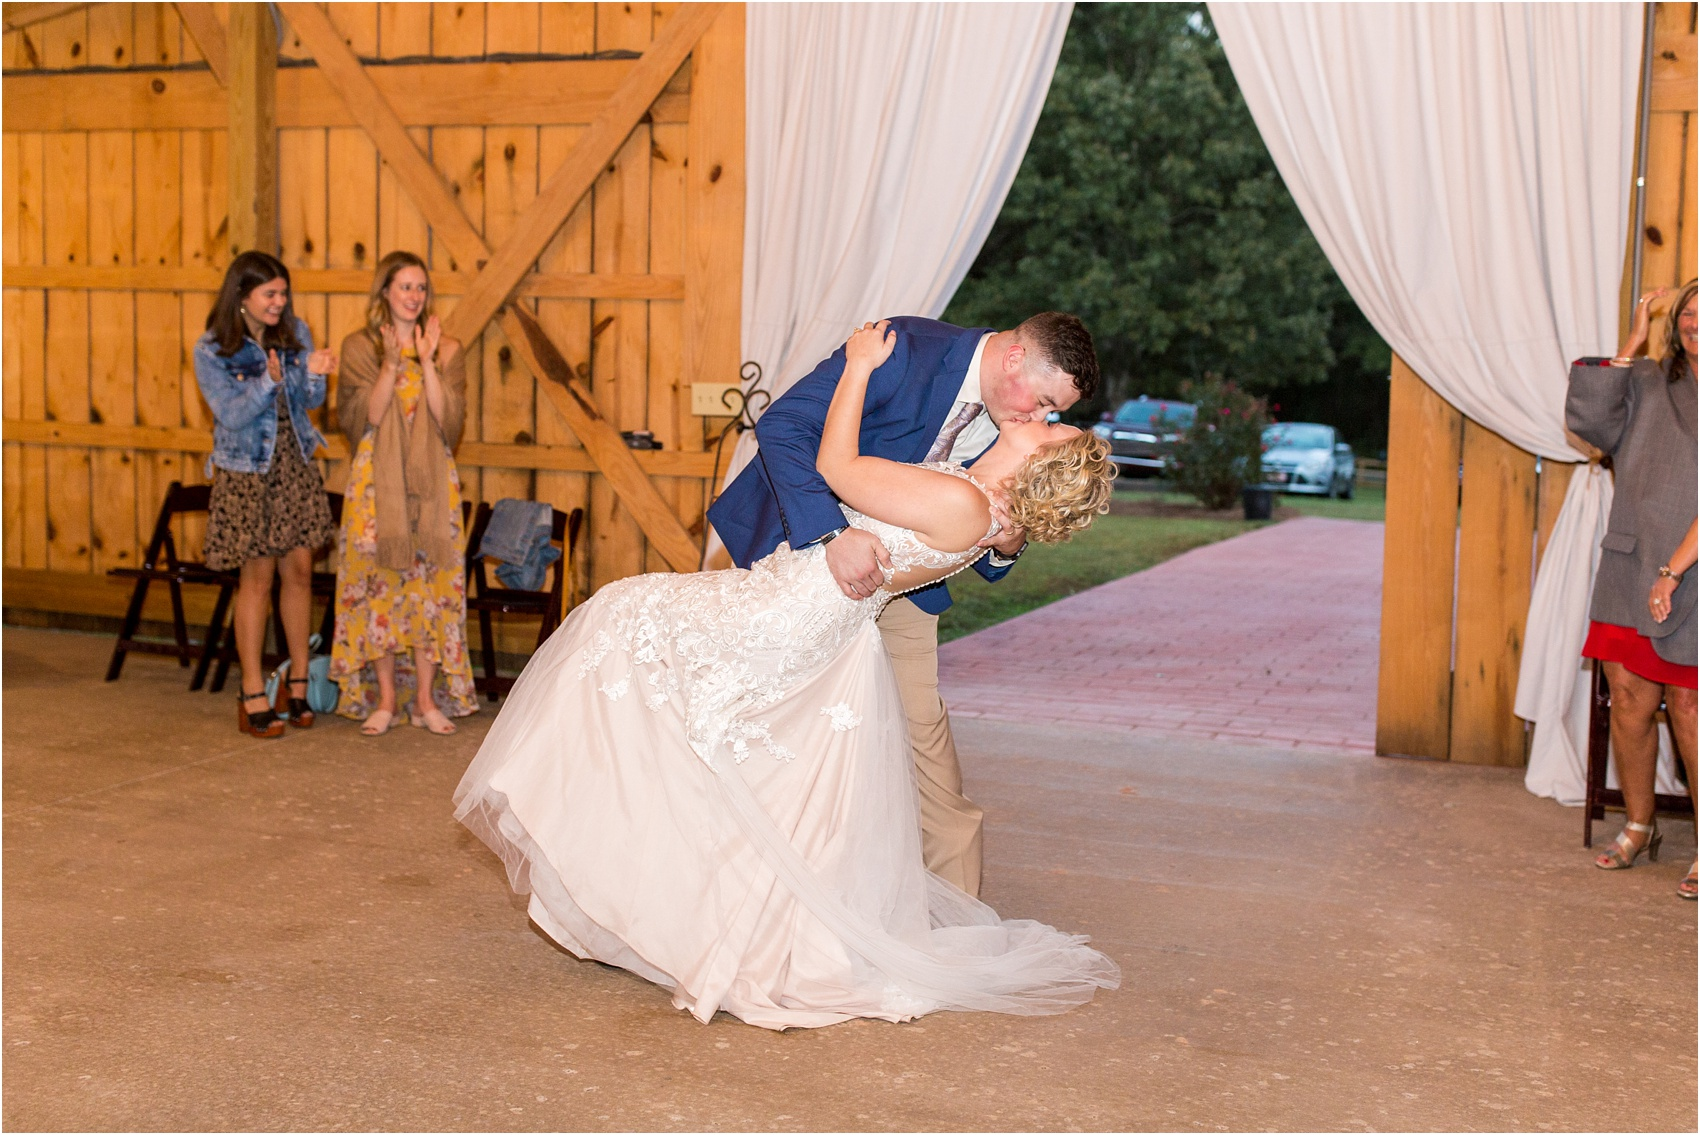 Savannah Eve Photography- Cannon-Gossett Wedding- Sneak Peek-104.jpg